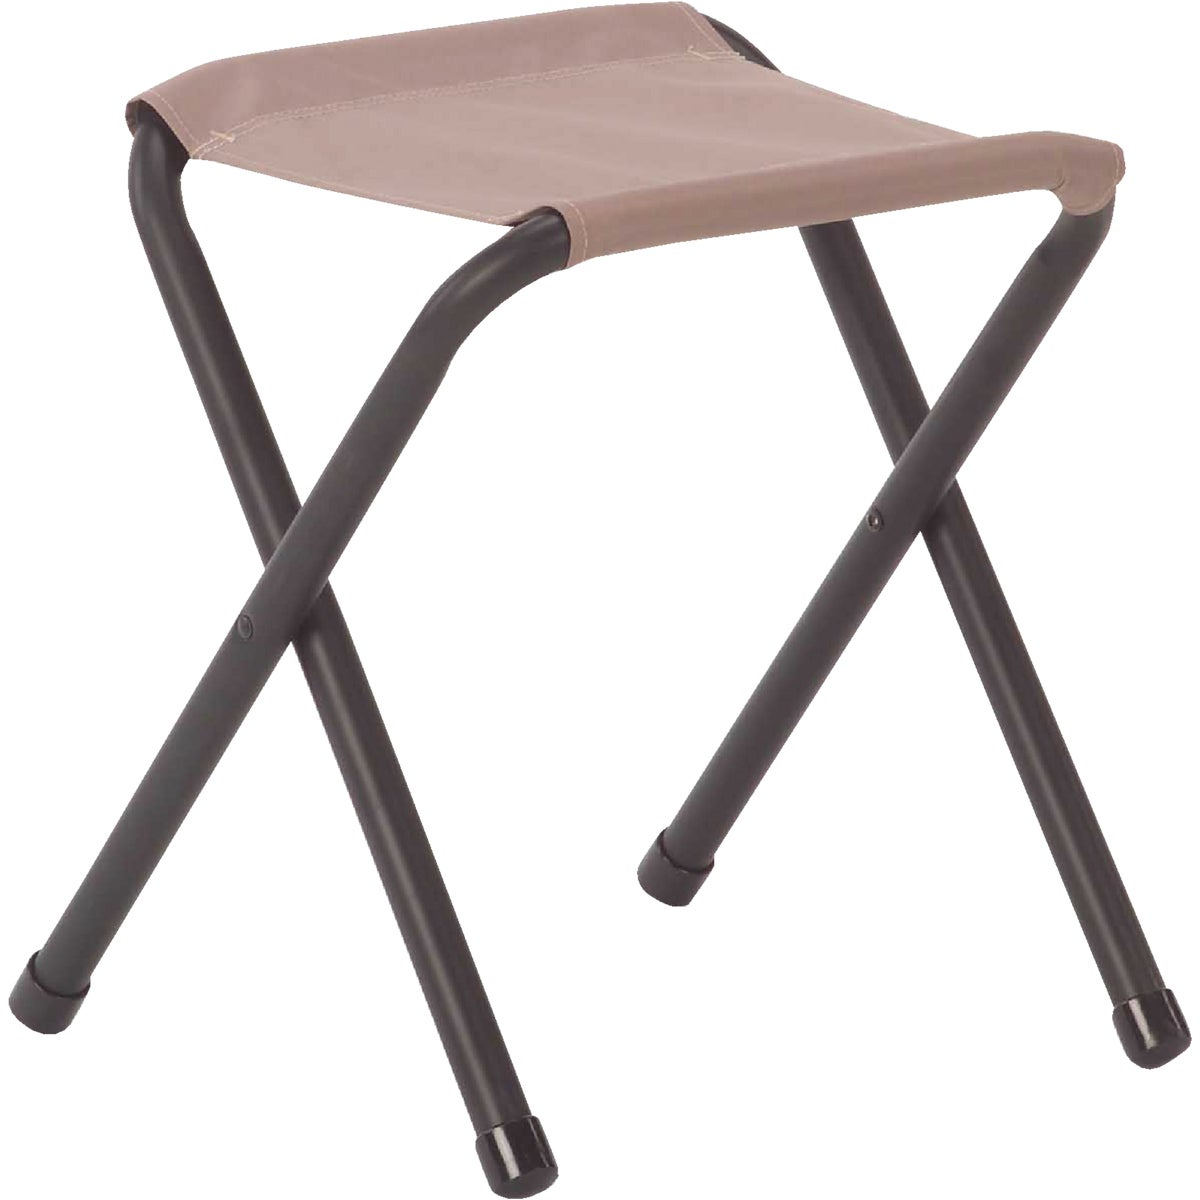 Academy Broadway 50370 Steel Frame Nylon Seat Folding Camp Stool - Color Red